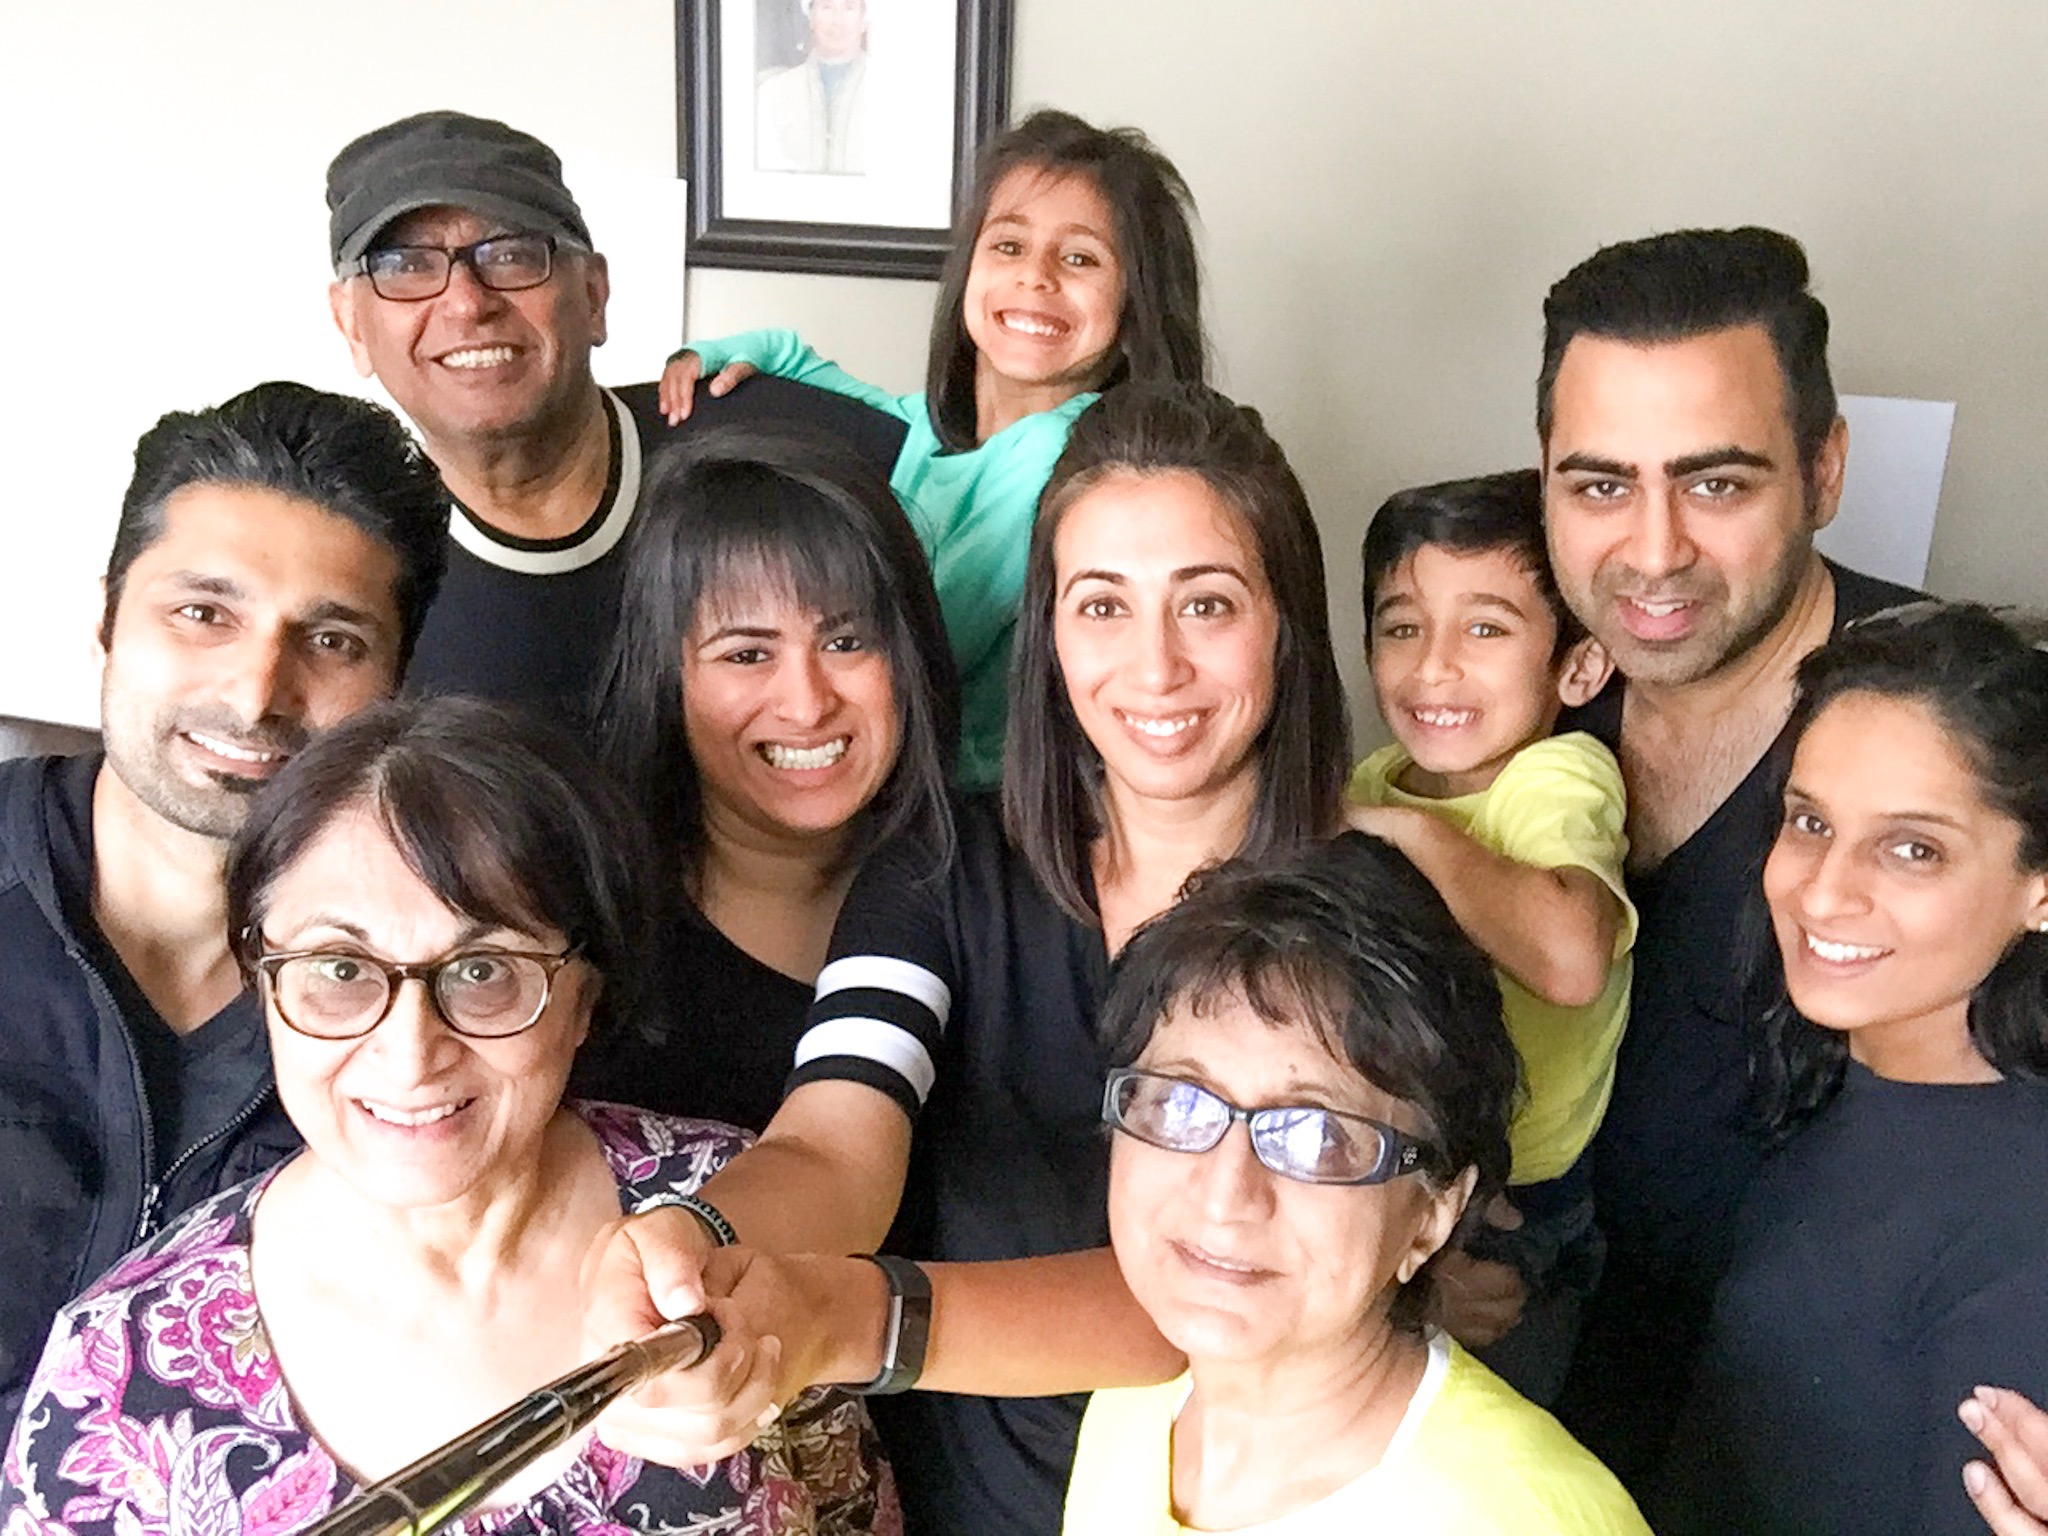 41st birthday - with family